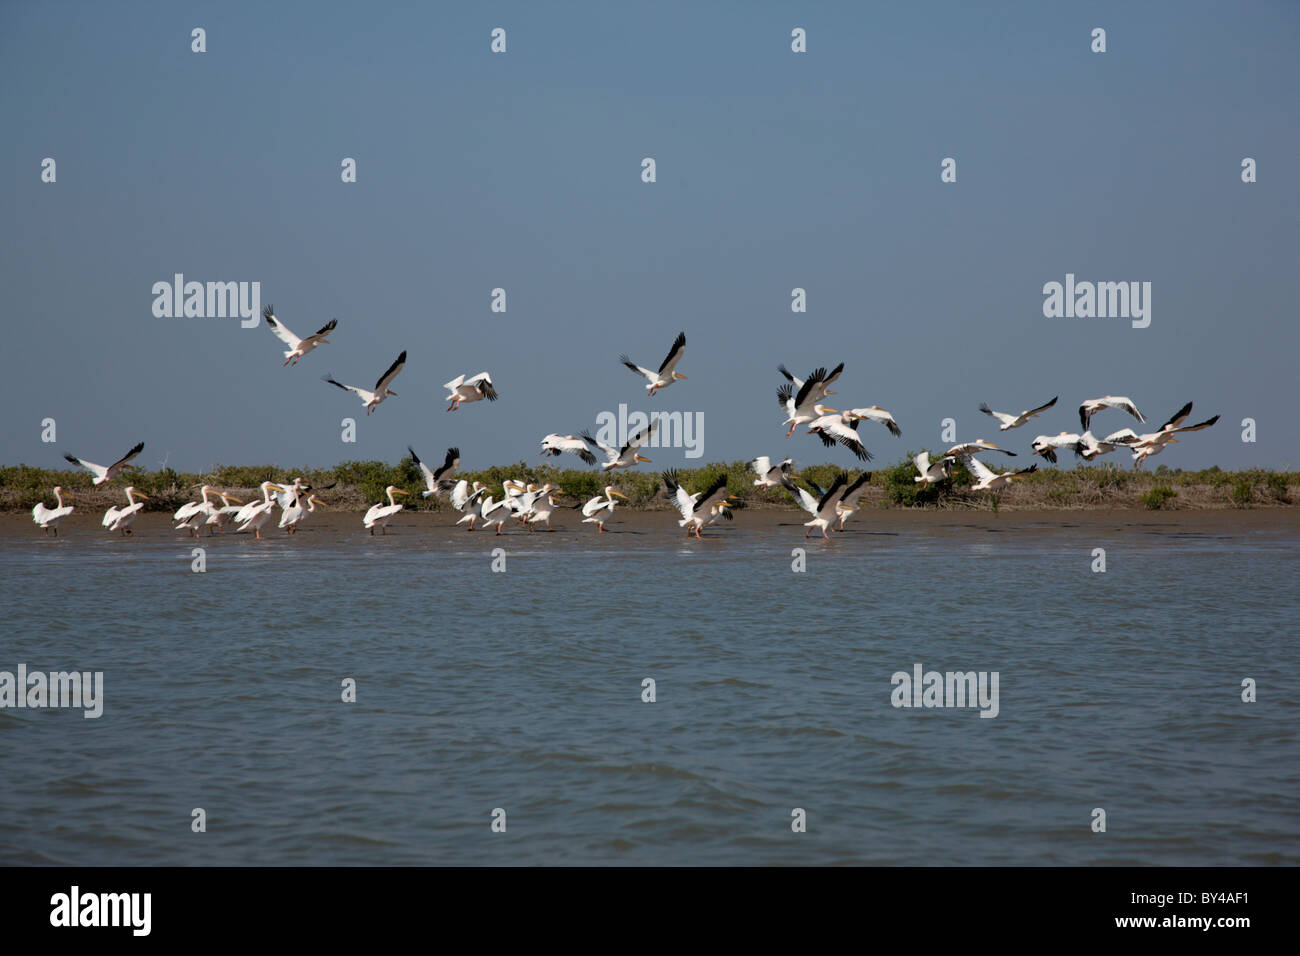 A groupf of great white pelican ( pelecanus onocrotalus)  birds in the Creek area of Gujarat, india - Stock Image